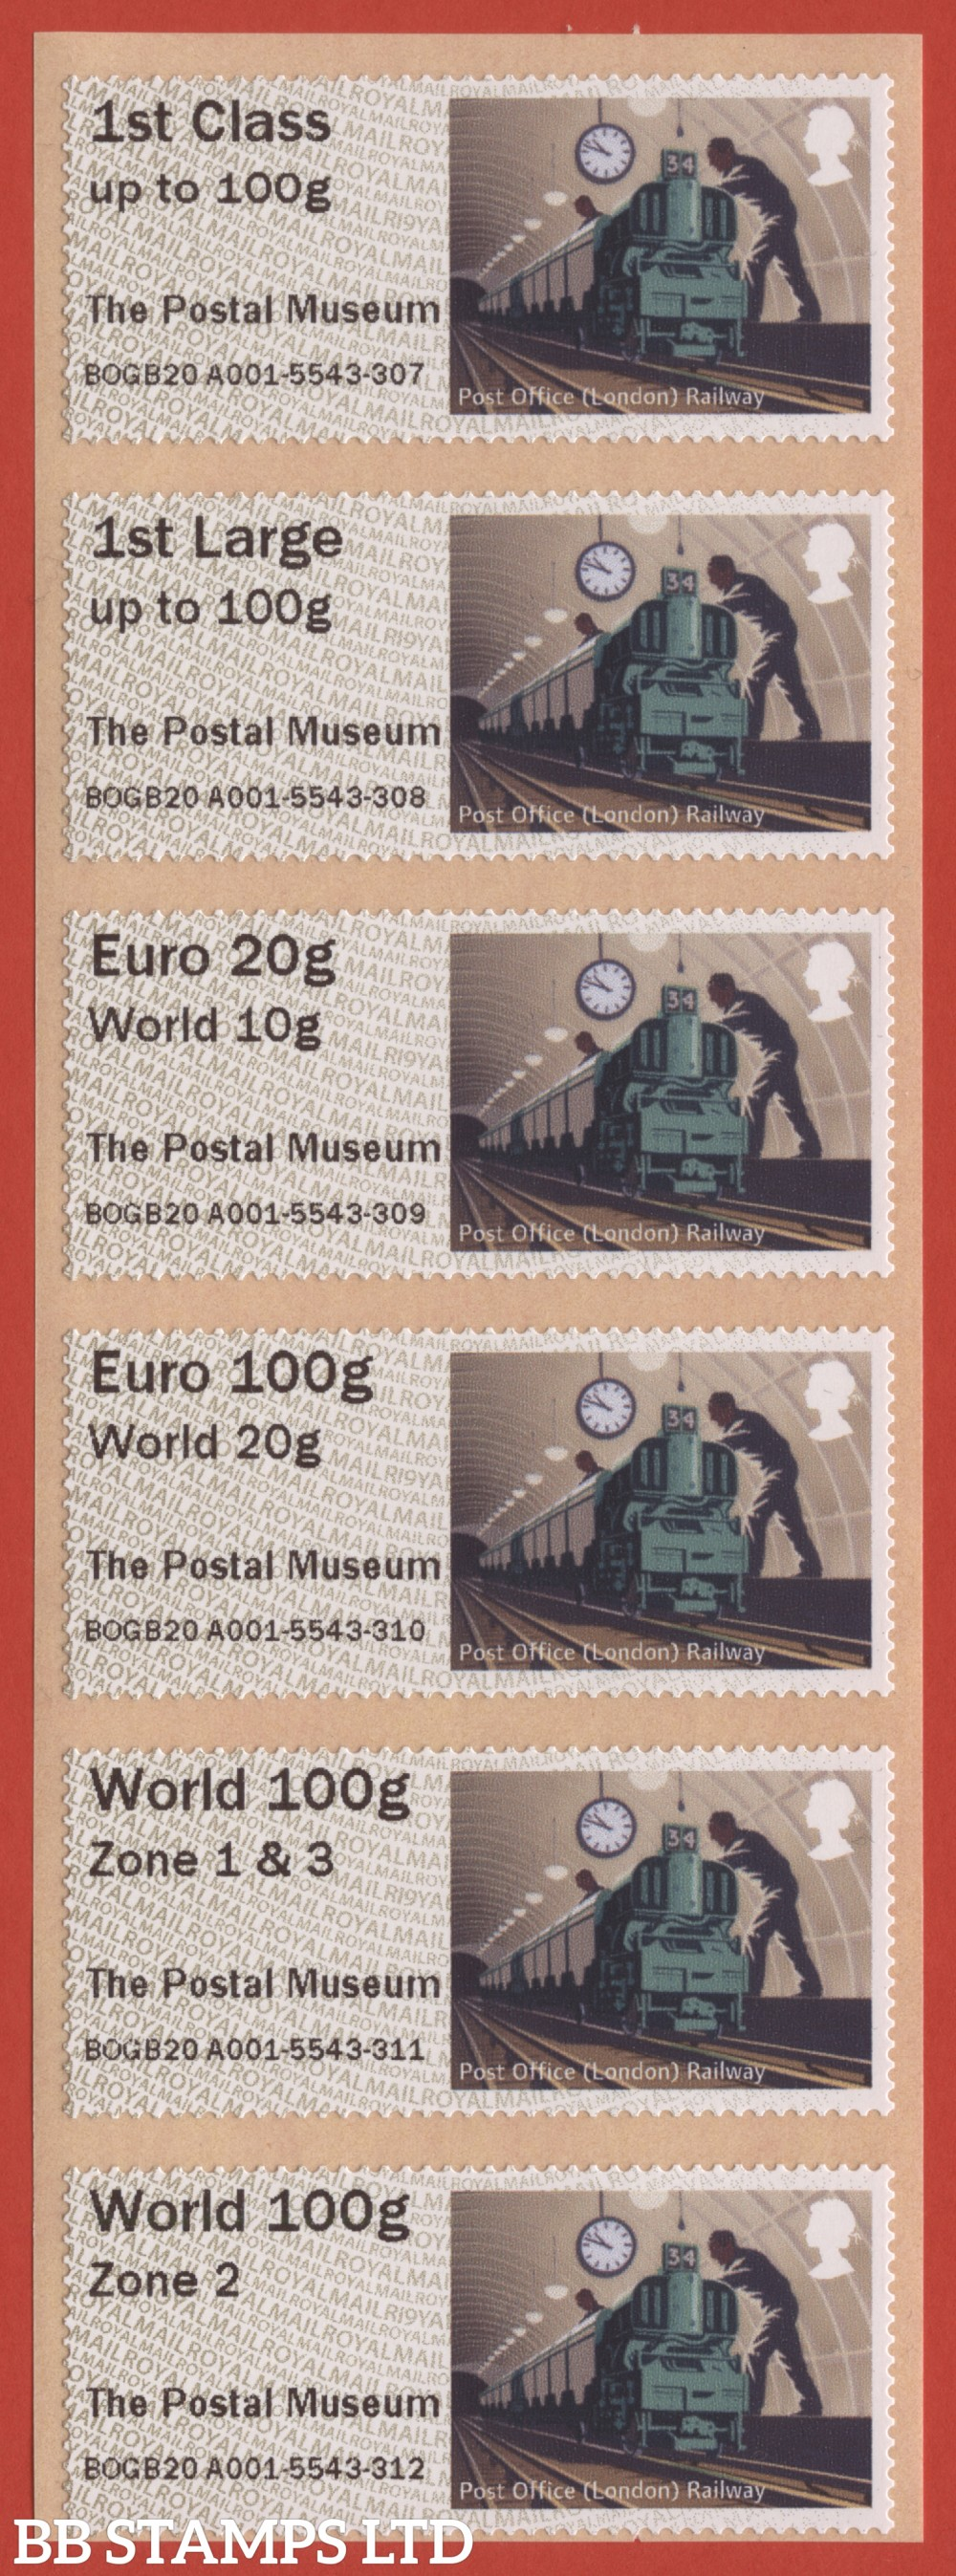 Underground Rail: The Postal Museum, set of 6 (TIIIA) with new overseas stamps: 1st/1stL/Euro 20g World 10g, and 3 new values: Euro 100g World 20g, World 100g Zone 1 & 3 [with &; doesn't exist with hyphen] and World Zone 2: R19Y year code (BK30, P7)